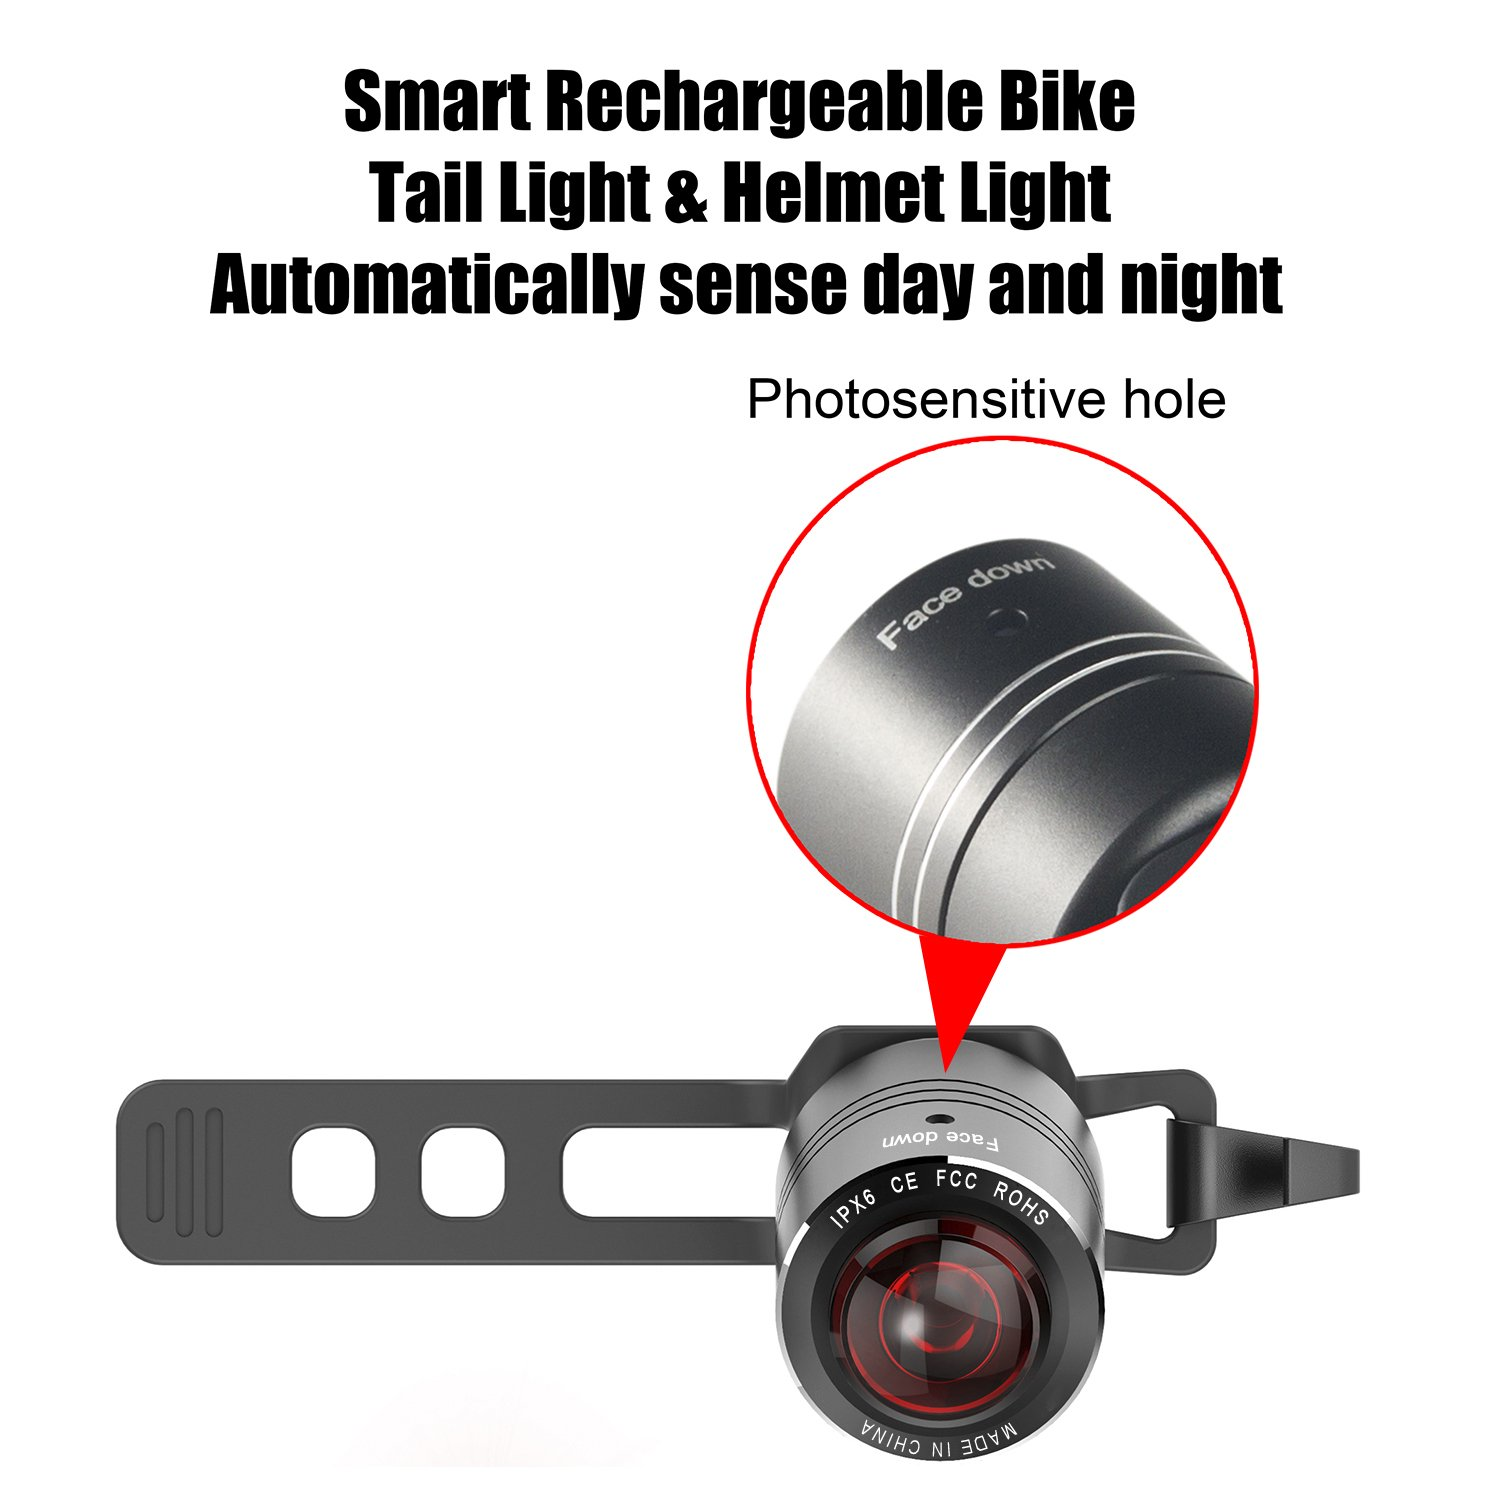 Victagen Smart USB Rechargeable Bike Tail Light IPX6 Waterproof LED Bicycle Taillight Cycling Safety Helmet Light Rear Bike Light Auto on-Off According to Brightness Movement